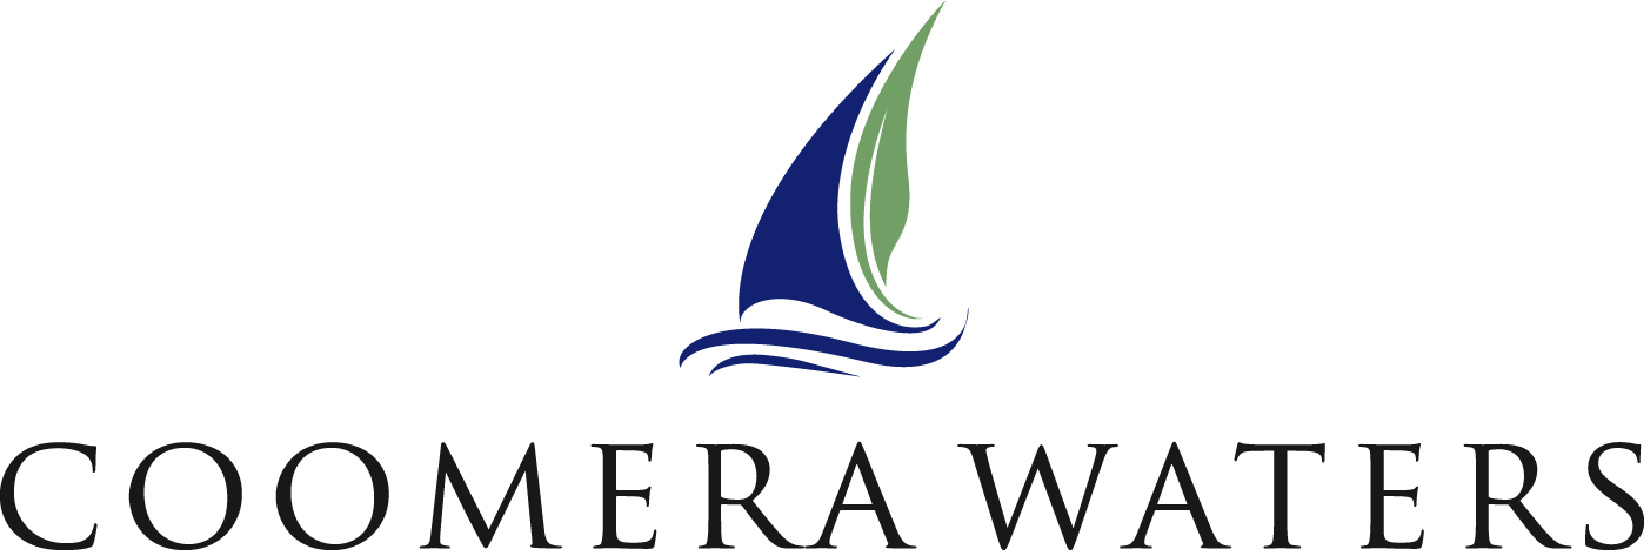 coomera waters logo